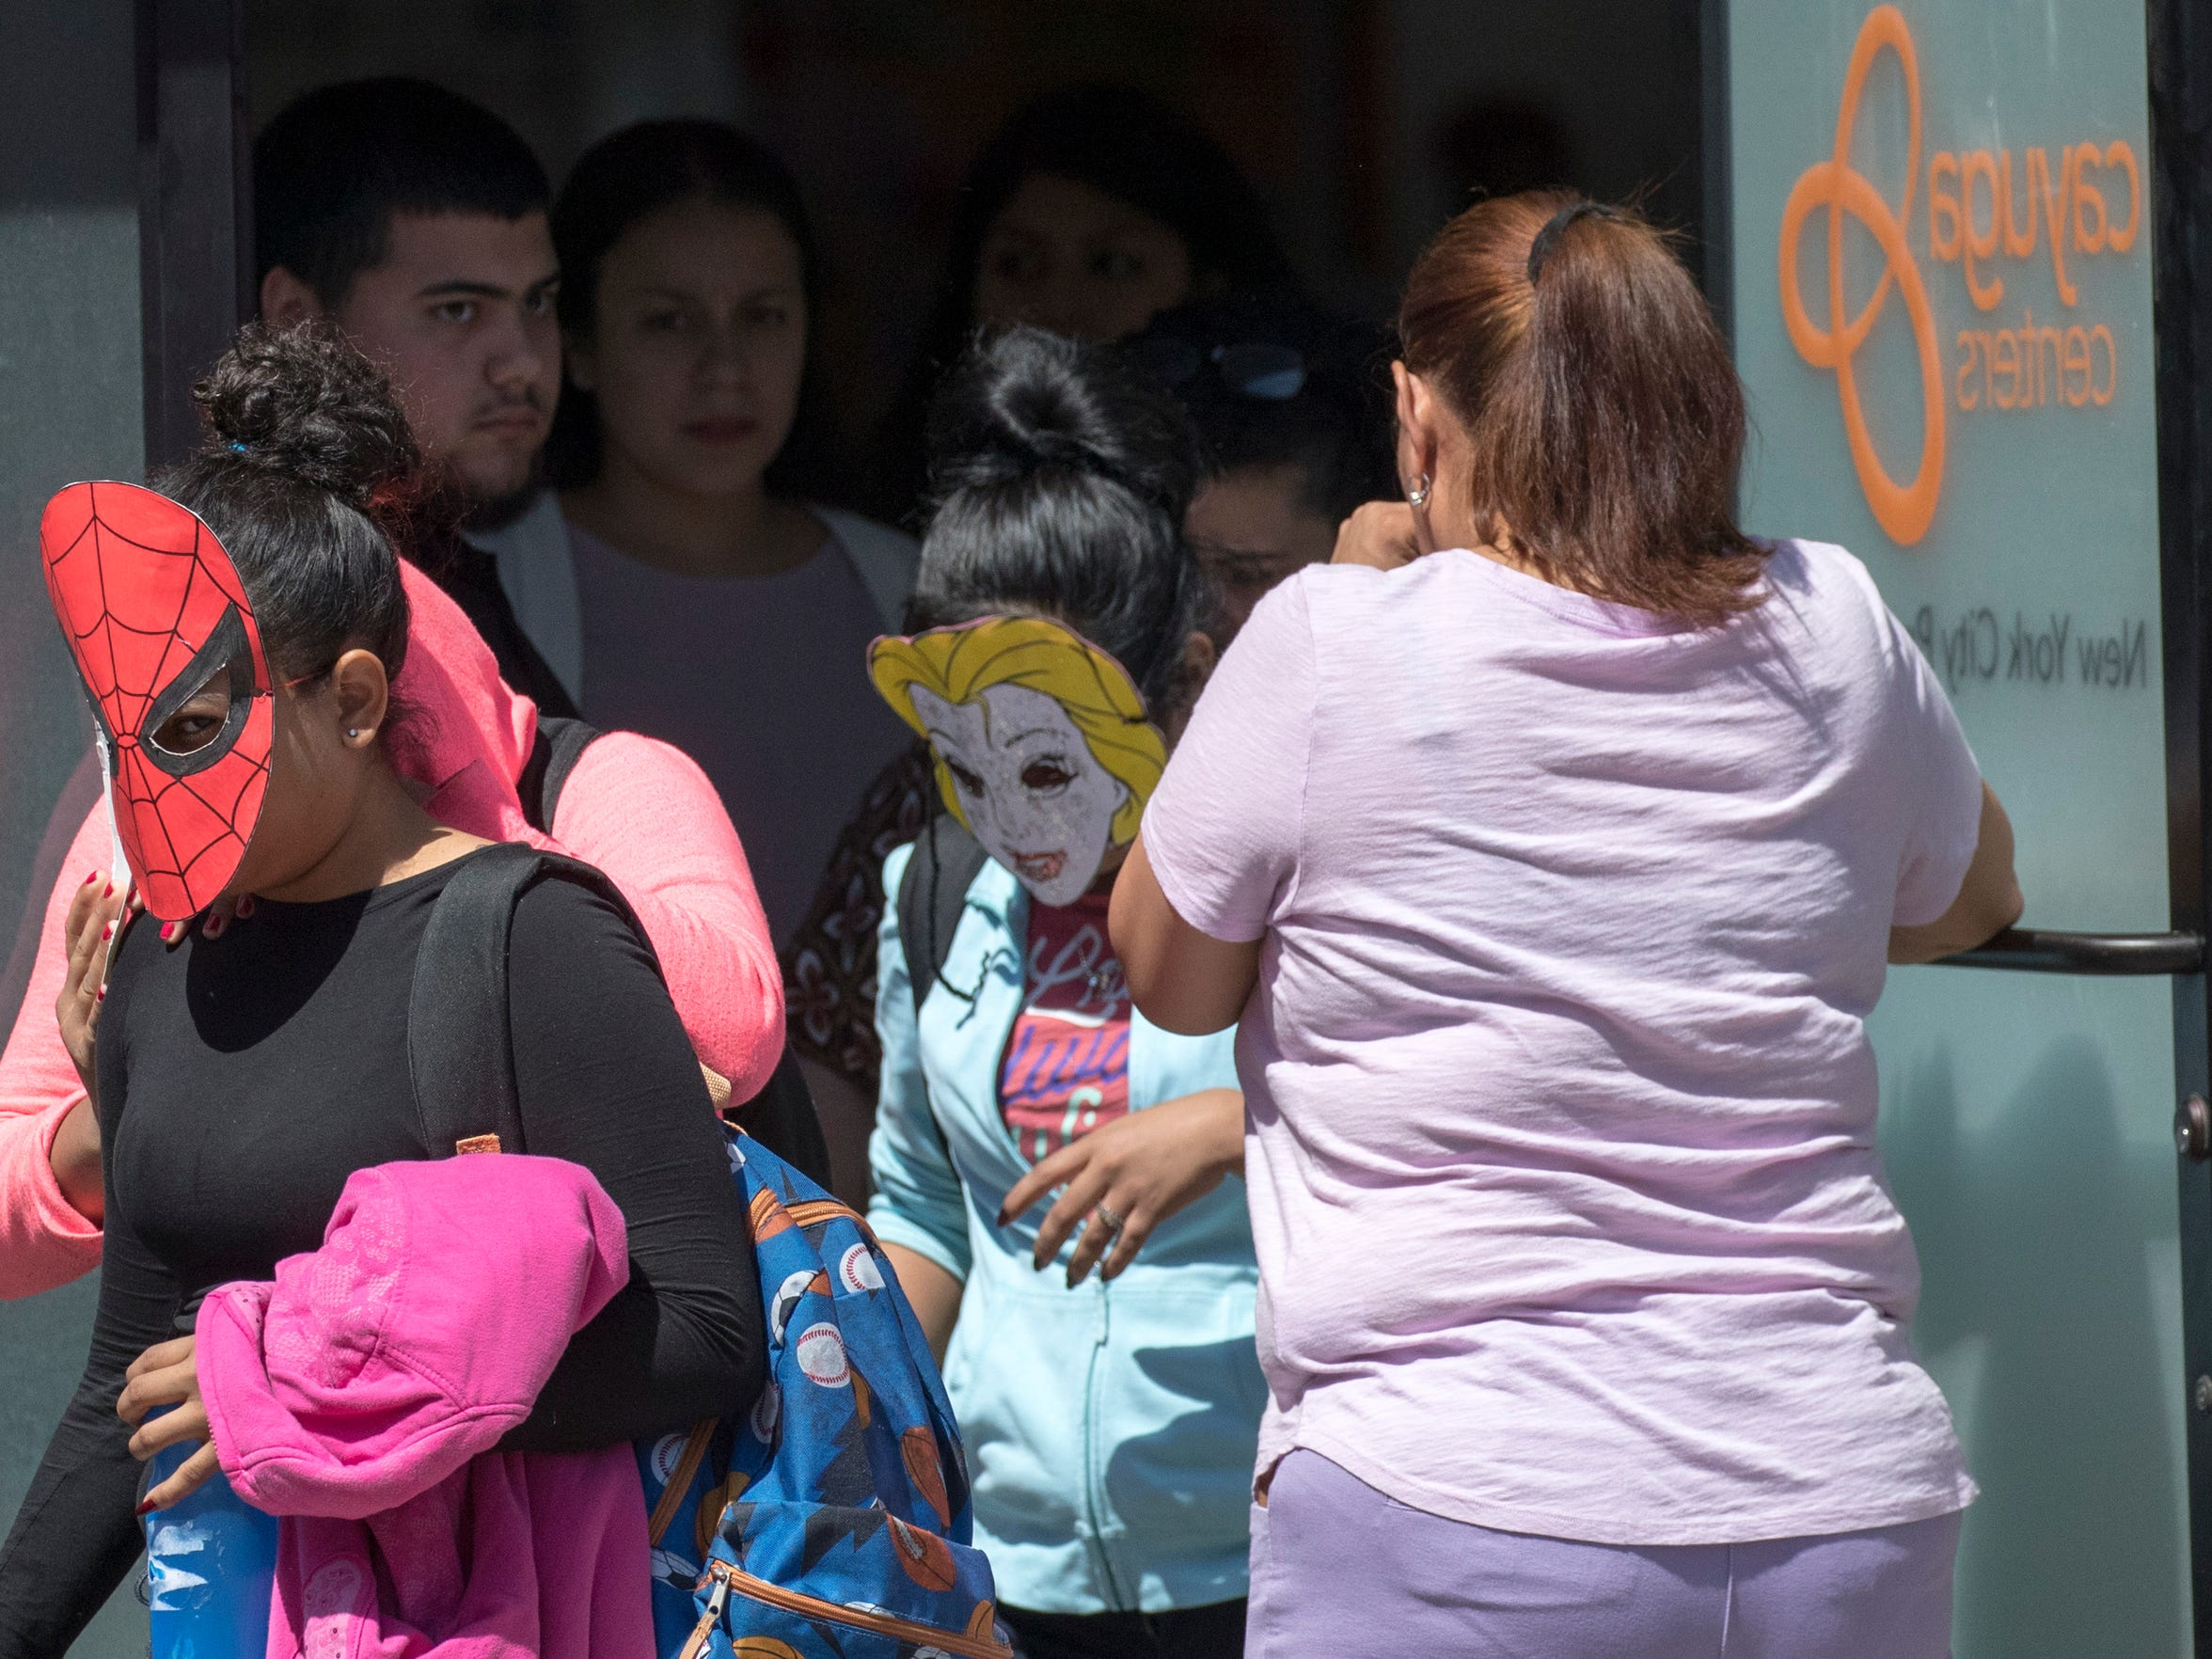 Children in homemade masks are escorted out of the Cayuga Centers facility on June 21, 2018, in New York. Mayor Bill de Blasio says he recently learned that migrant children separated from their parents by federal officials are being cared for in the facility.